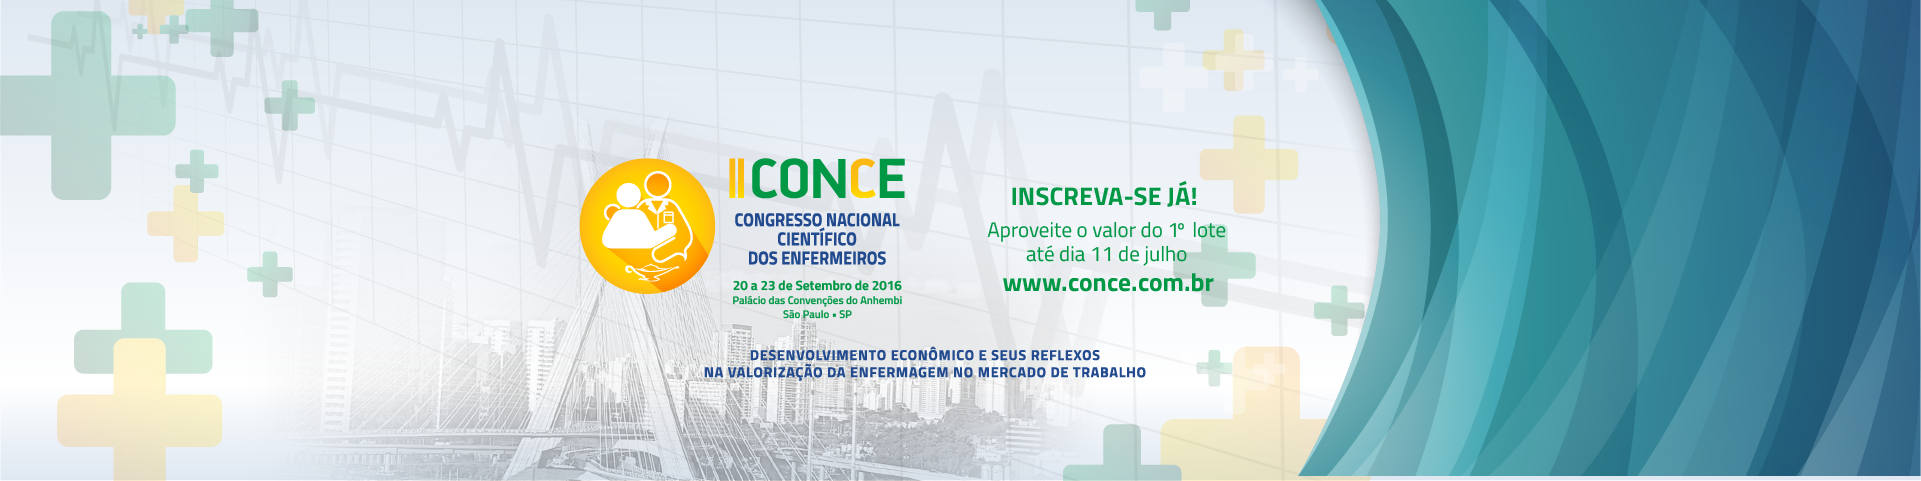 Banner_1lote inscricao_site_1920x480_IICONCE-01